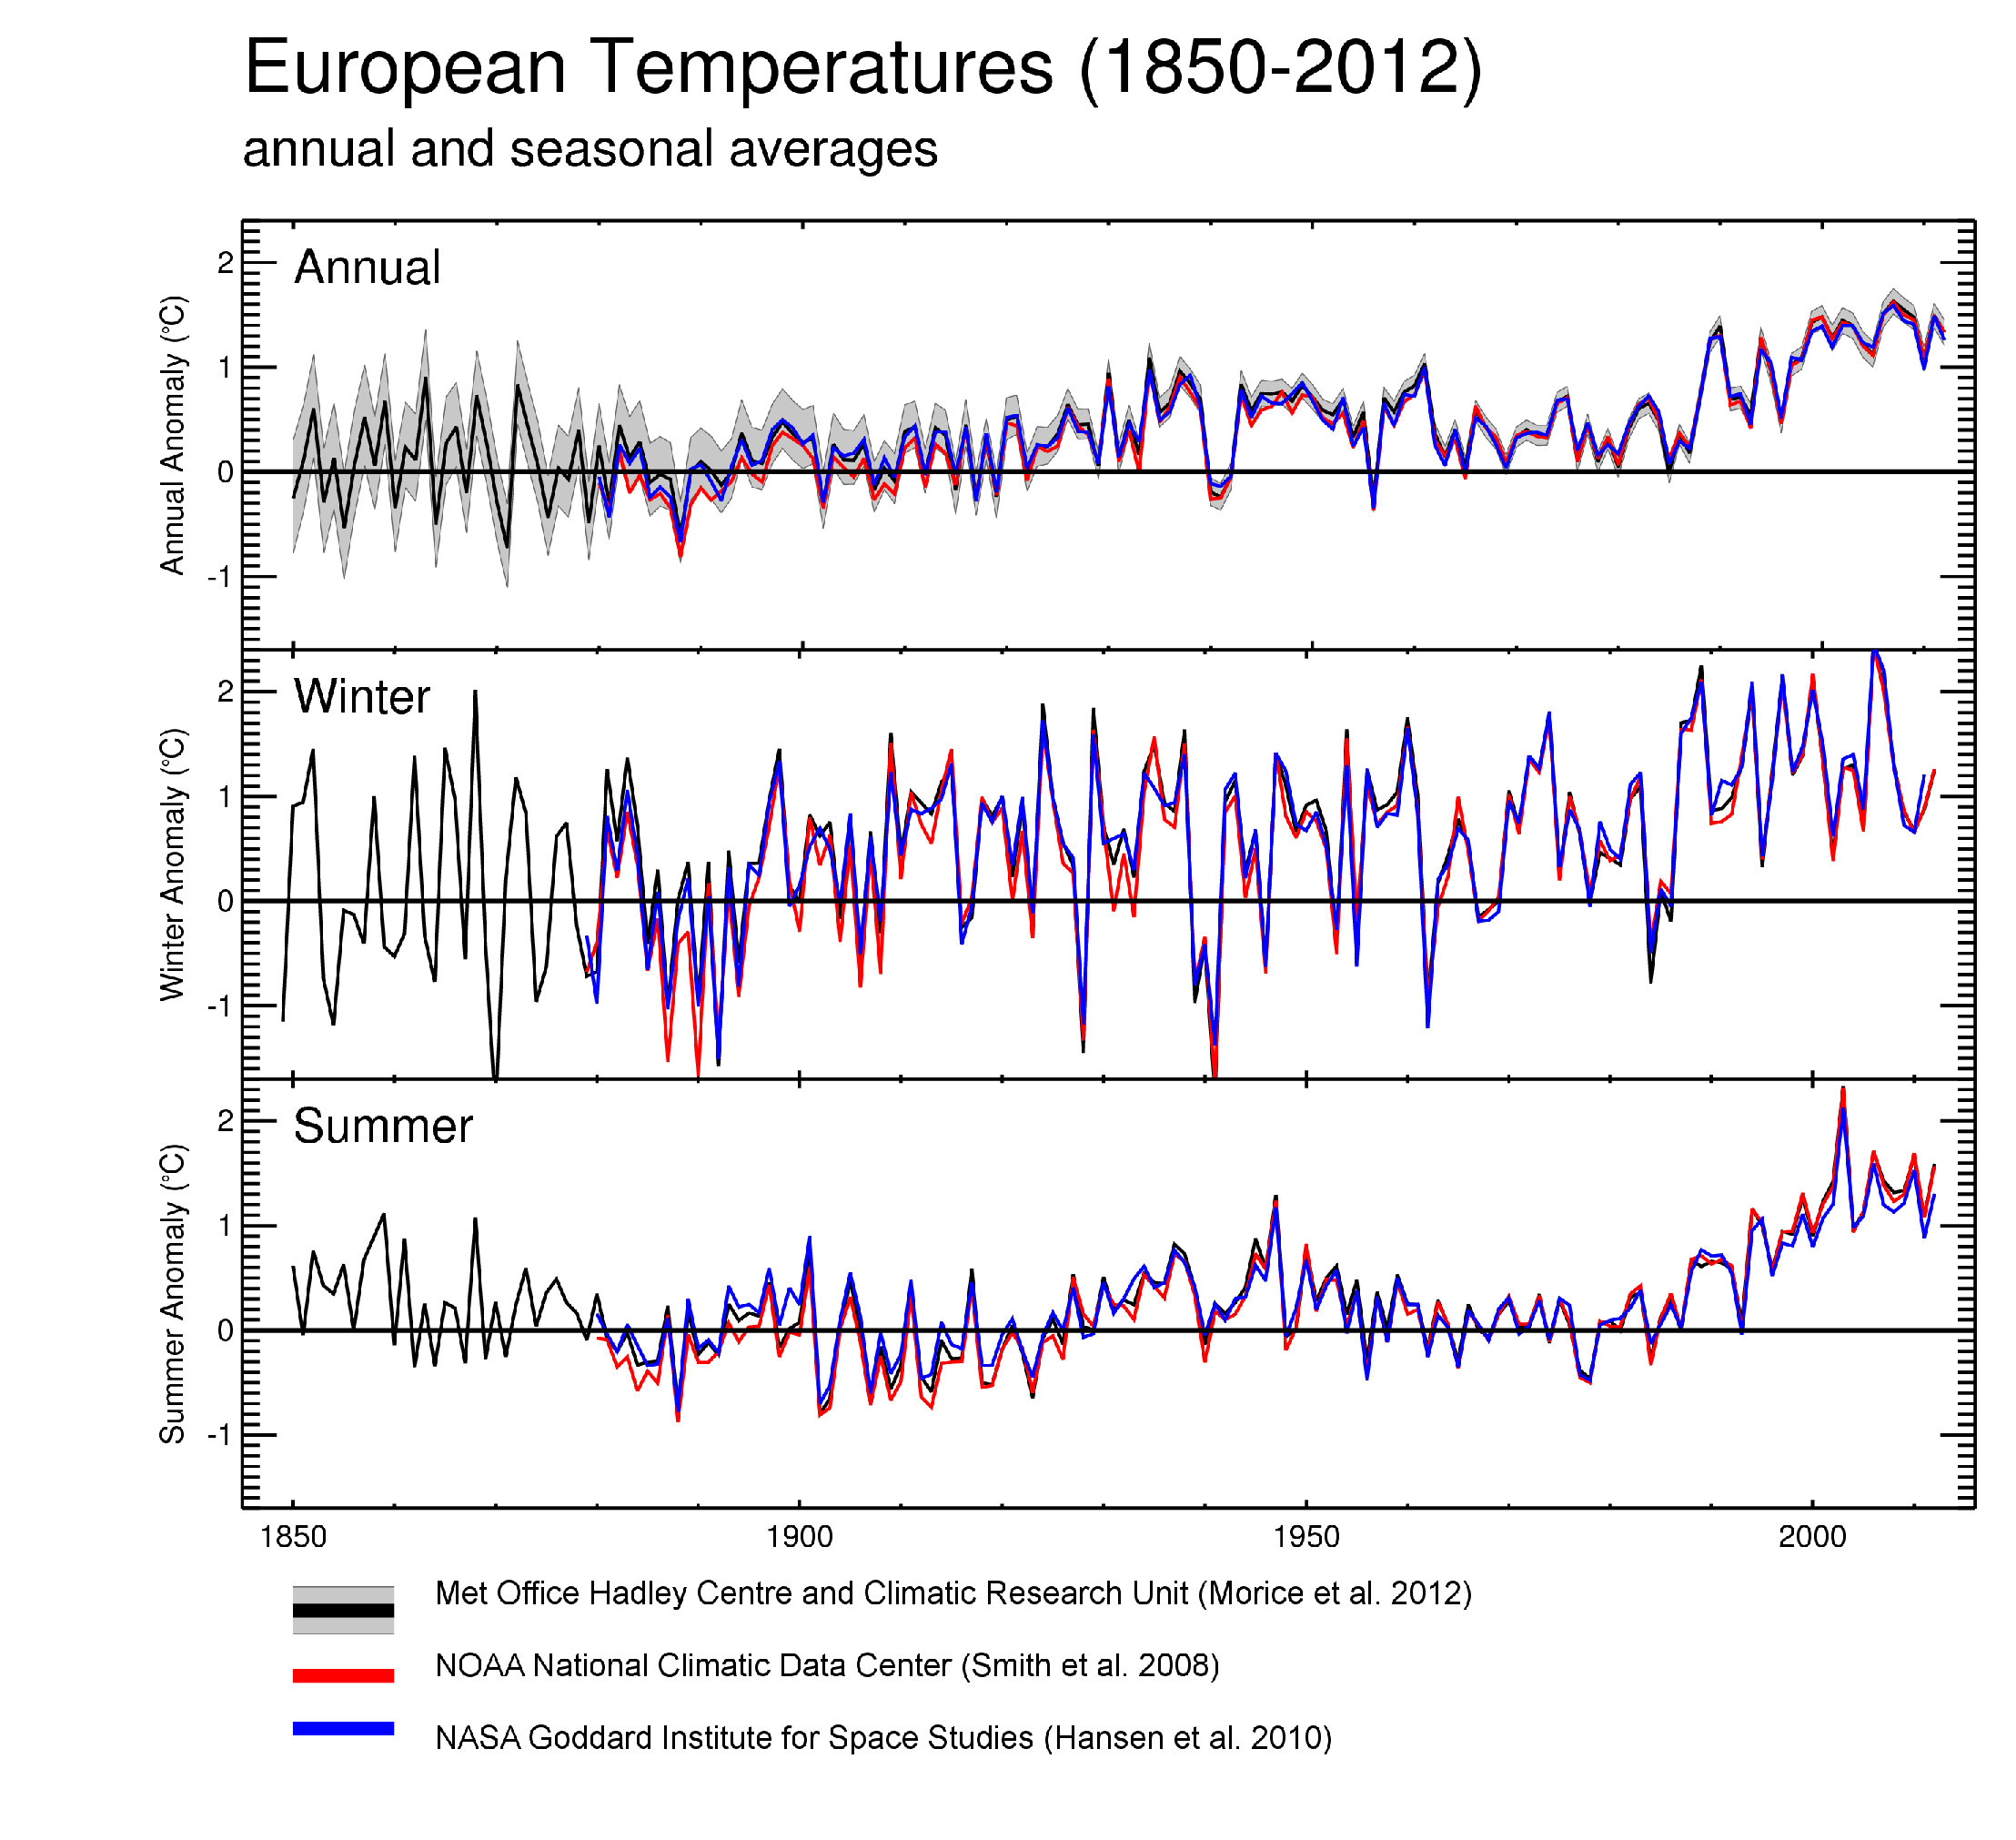 European average air temperature anomalies (1850 to 2012) in °C over land areas only, for annual (upper), winter (middle) and summer (lower) periods